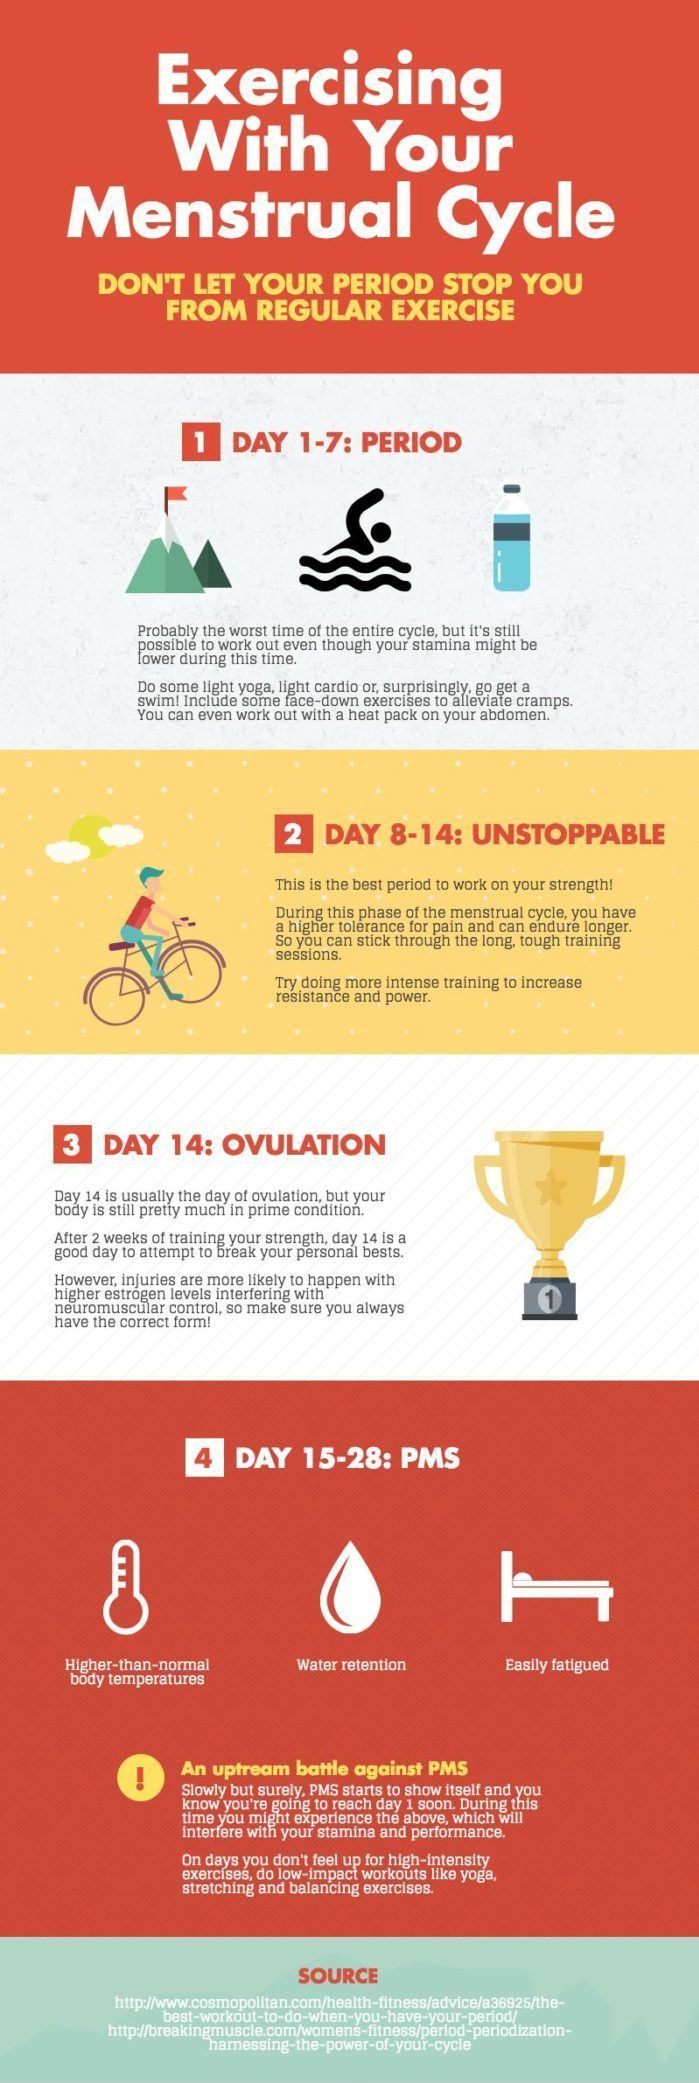 Exercising with your menstrual cycle - an infographic